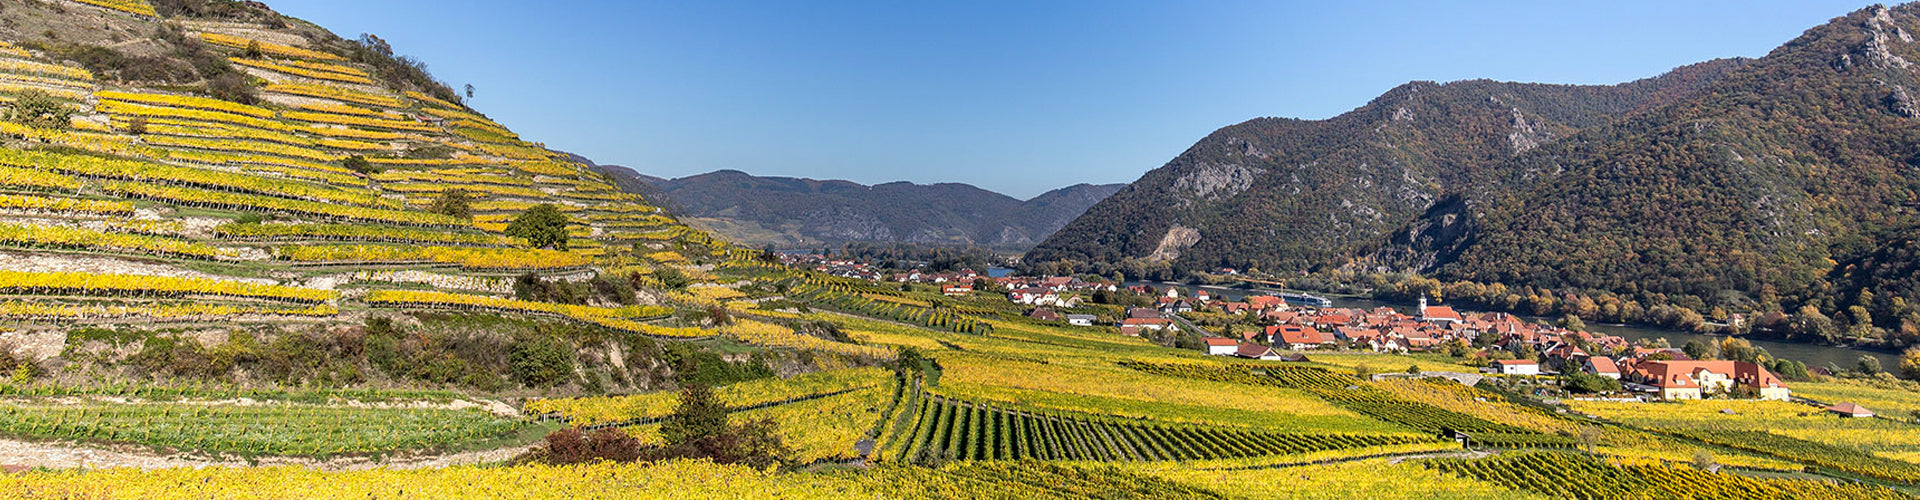 Rudi Pichler Vineyards in the Wachau region of Austria